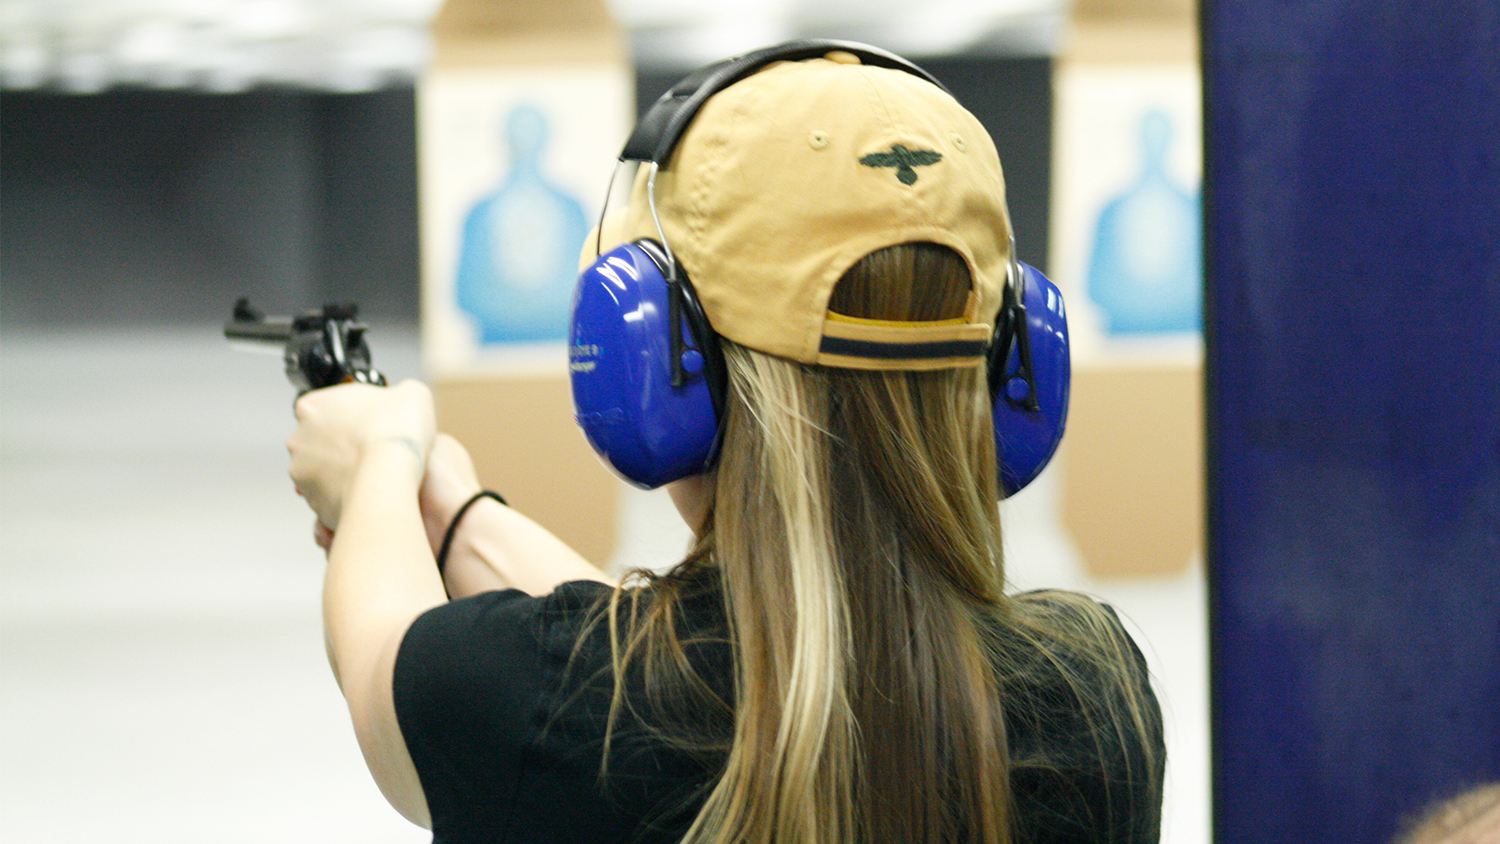 Take Your Pistol Training To The Next Level